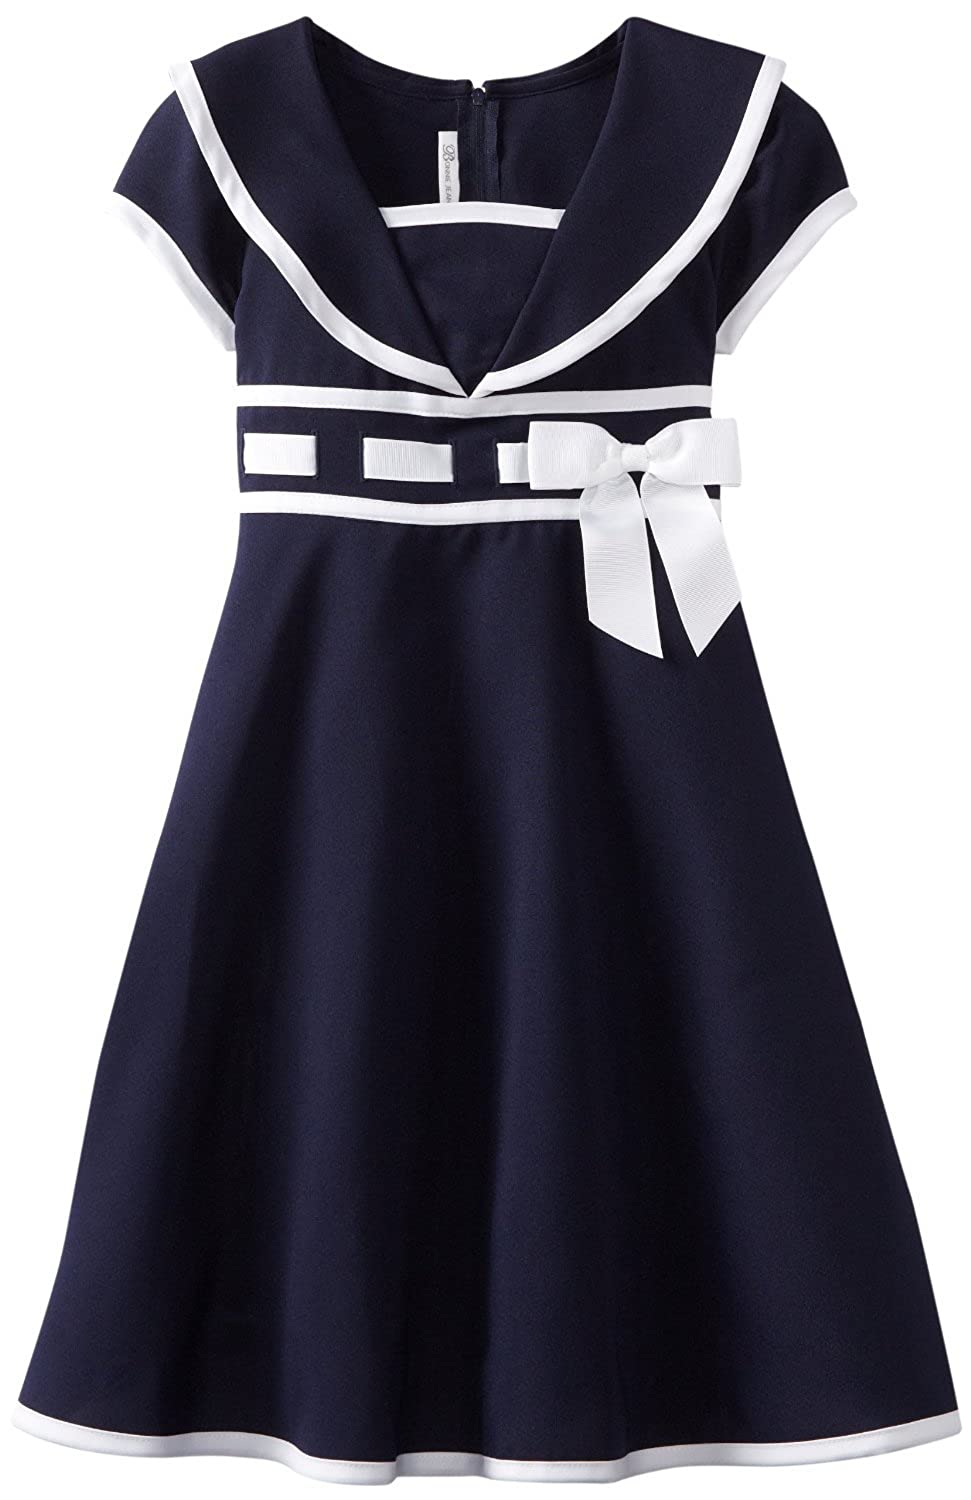 Vintage Style Children's Clothing: Girls, Boys, Baby, Toddler Girls Navy Sailor Dress - Nautical Dress $34.98 AT vintagedancer.com